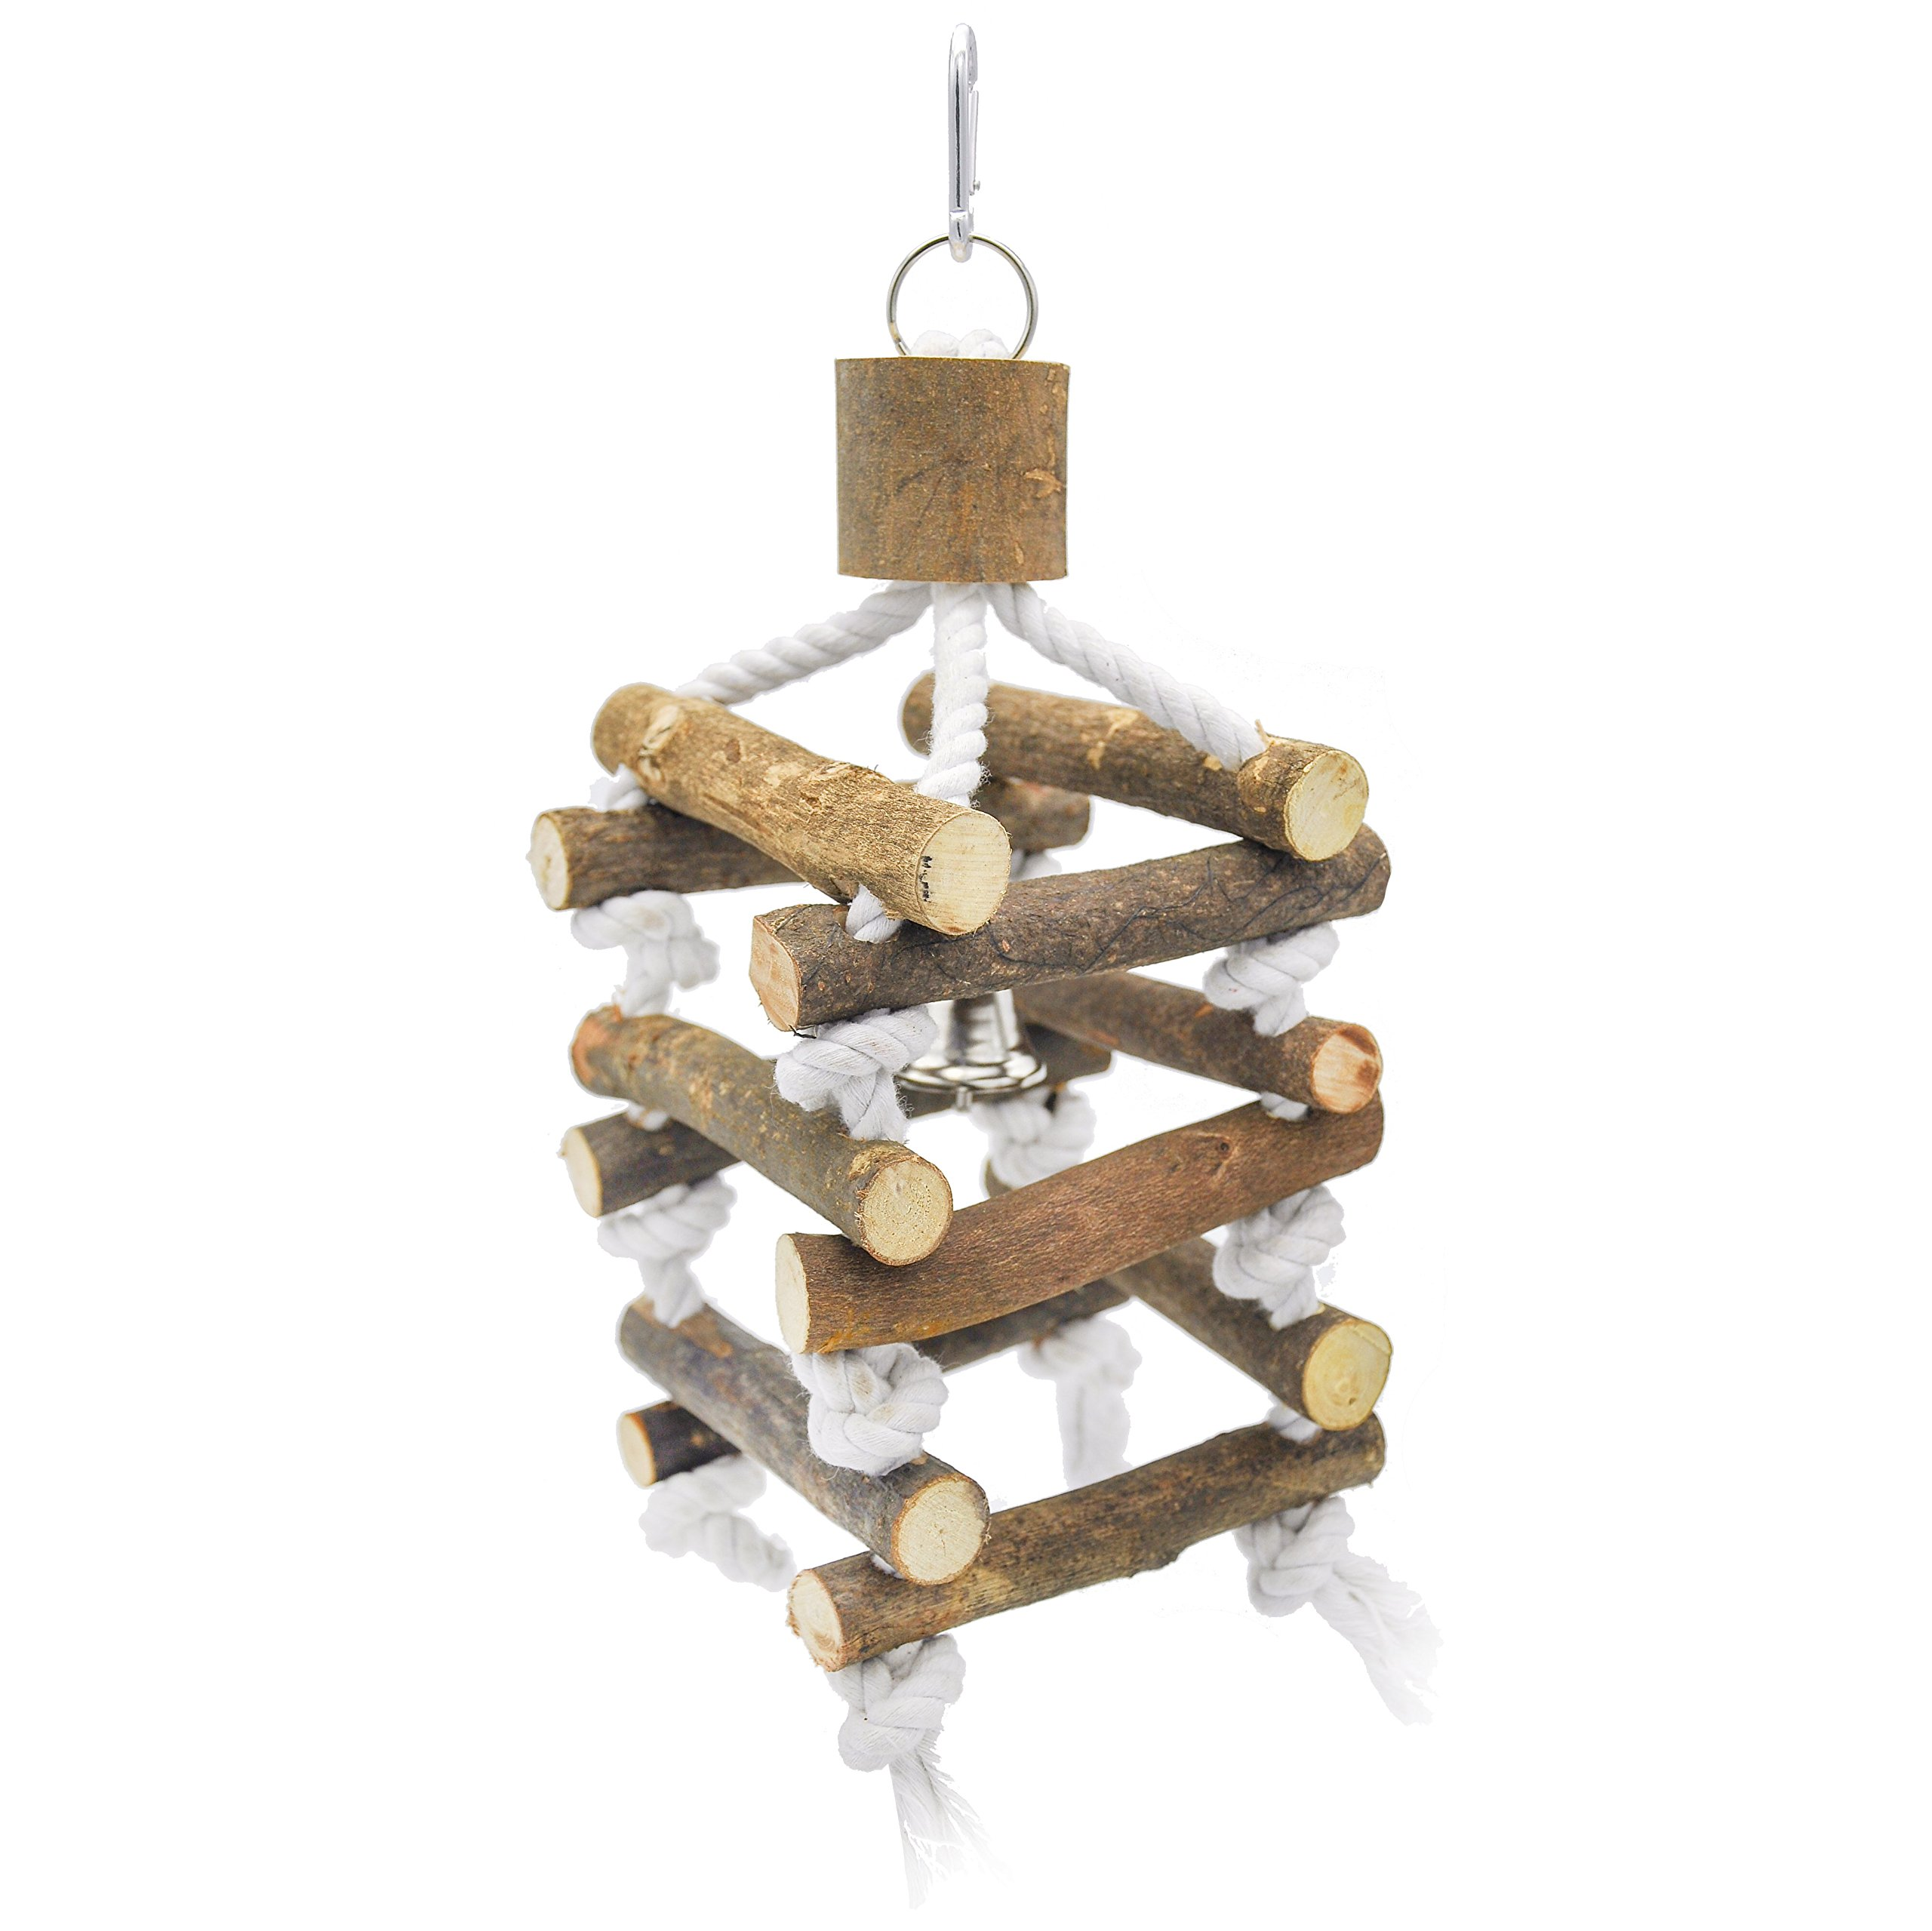 Best rated in bird swings helpful customer reviews amazon niteangel 3 level parrot climbing tower wooden bird swing product image arubaitofo Images